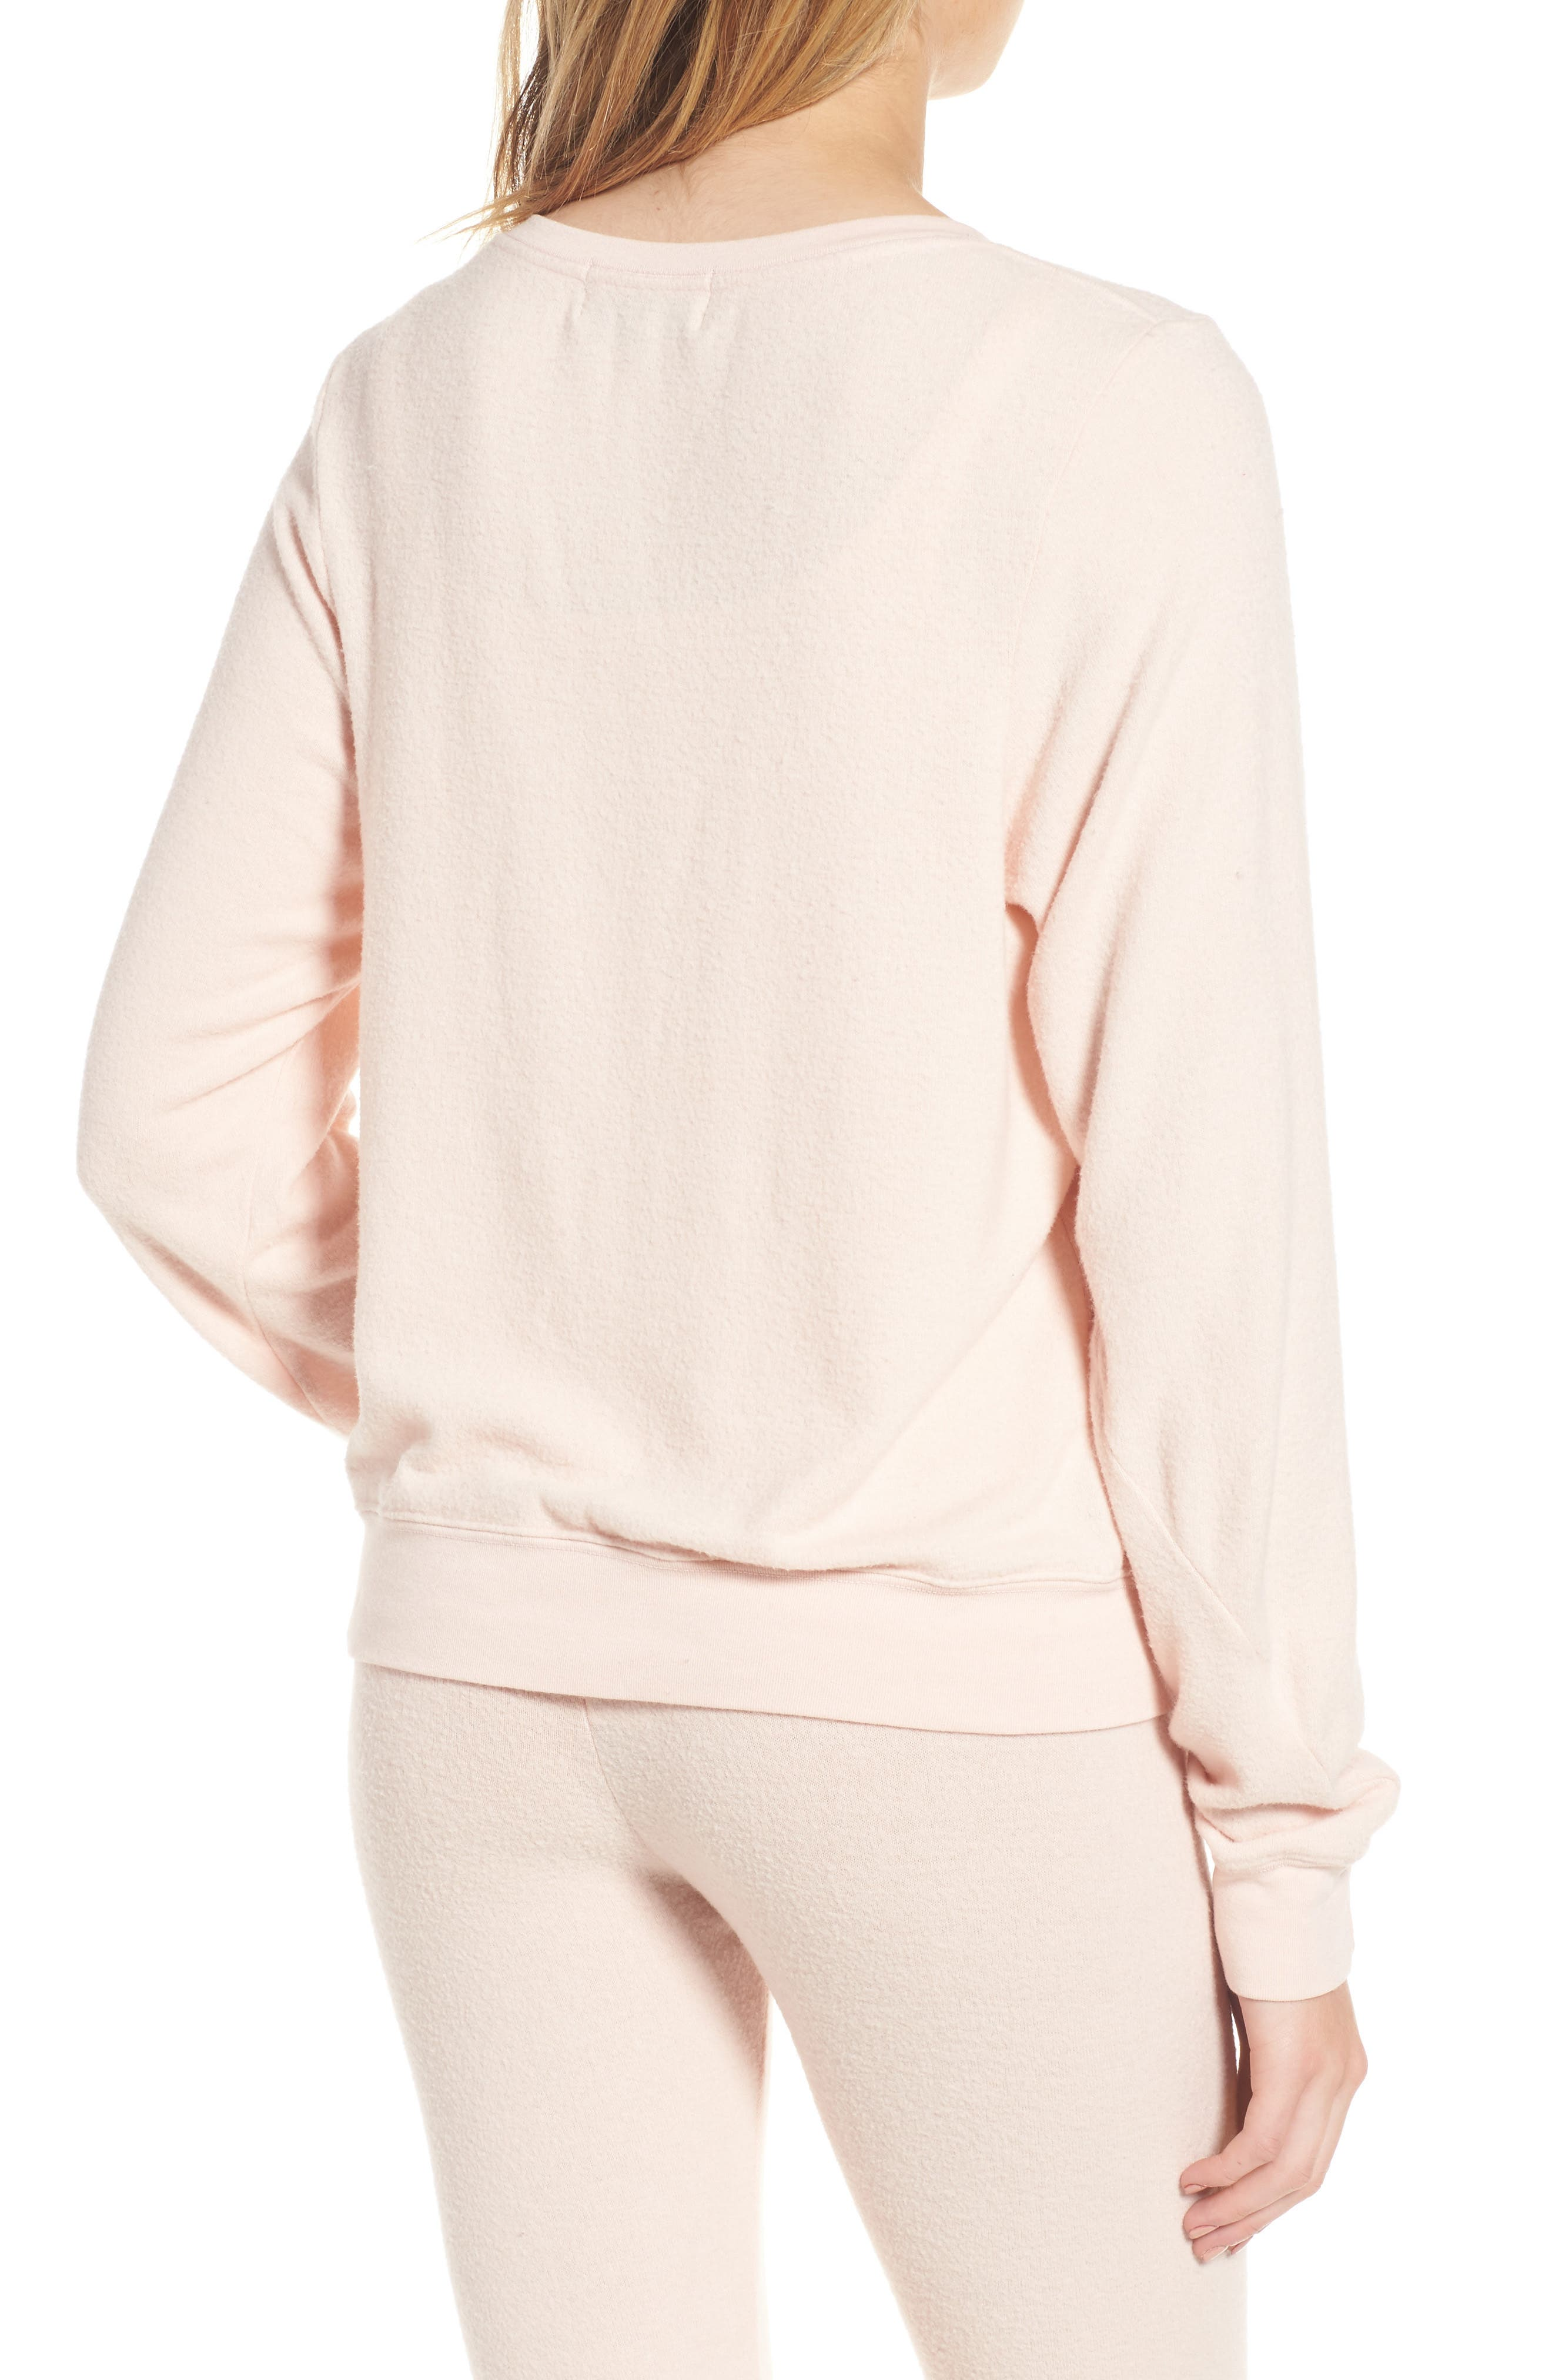 Rosé All Day Sweatshirt,                             Alternate thumbnail 2, color,                             Rose